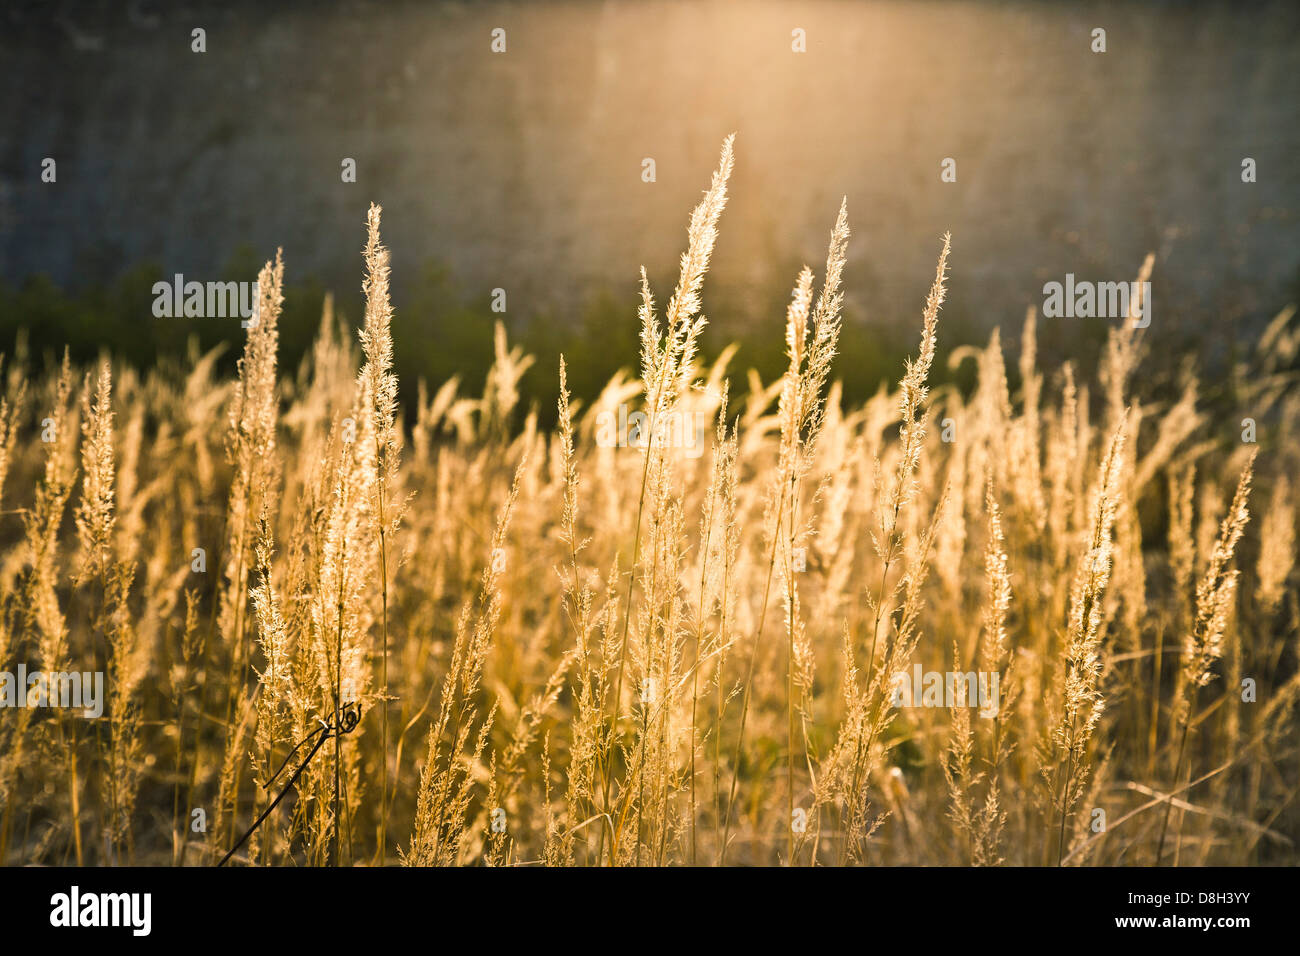 Blades of grass in the backlight - Stock Image